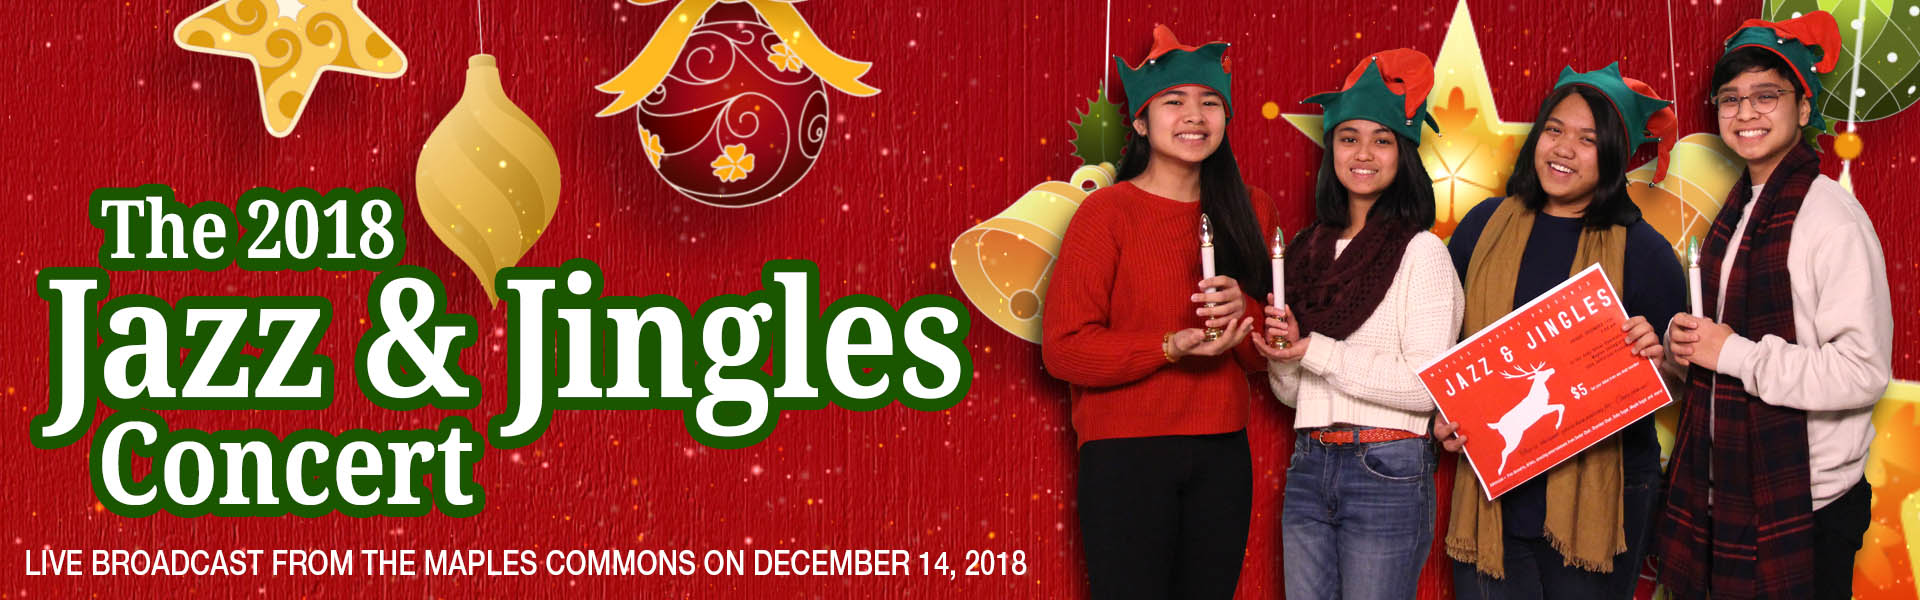 2018 Jazz and Jingles Concert